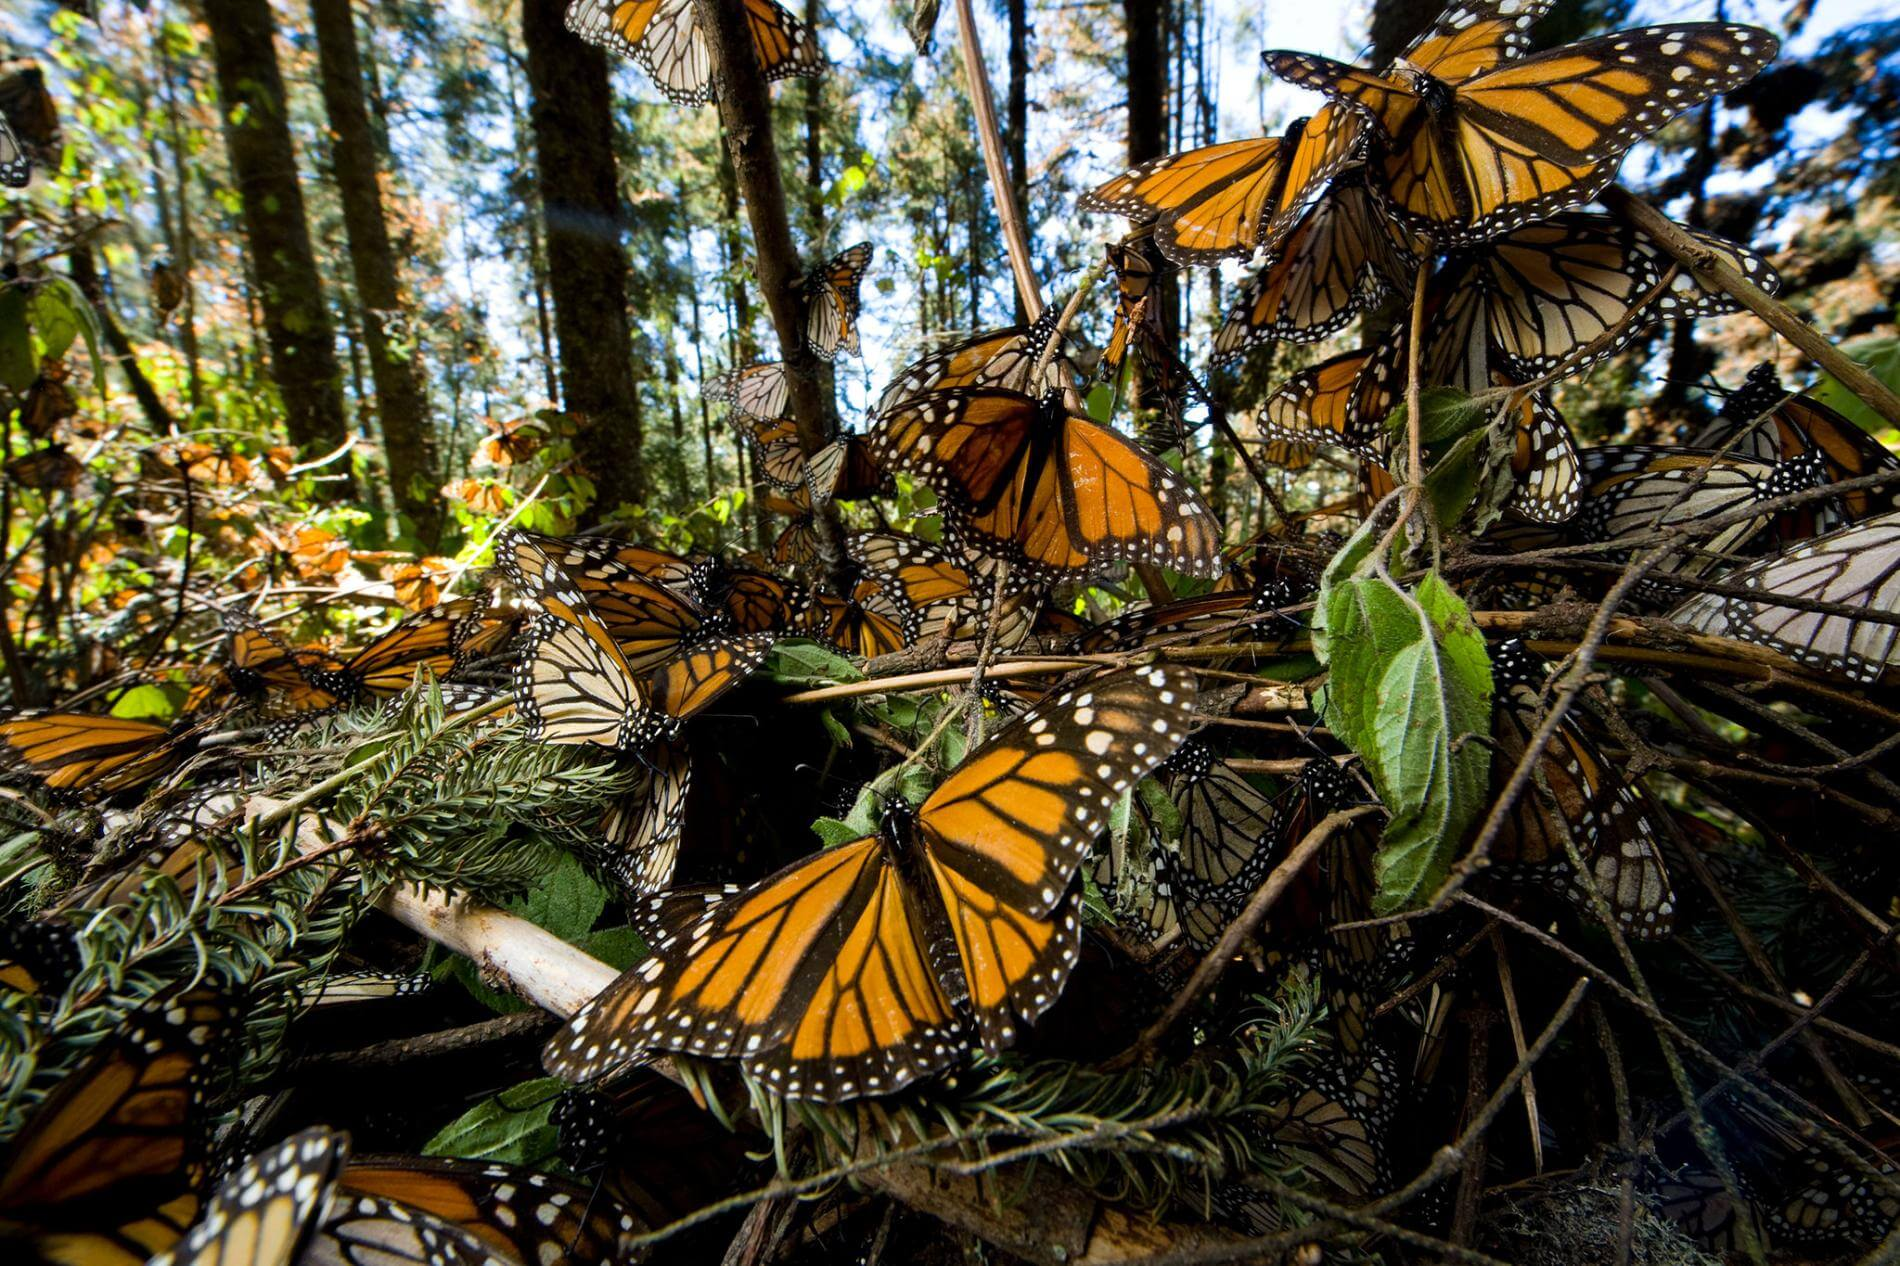 Eastern monarch butterfly is in decline, but it's not due to habitat loss or chemicals. Blame it on climate change